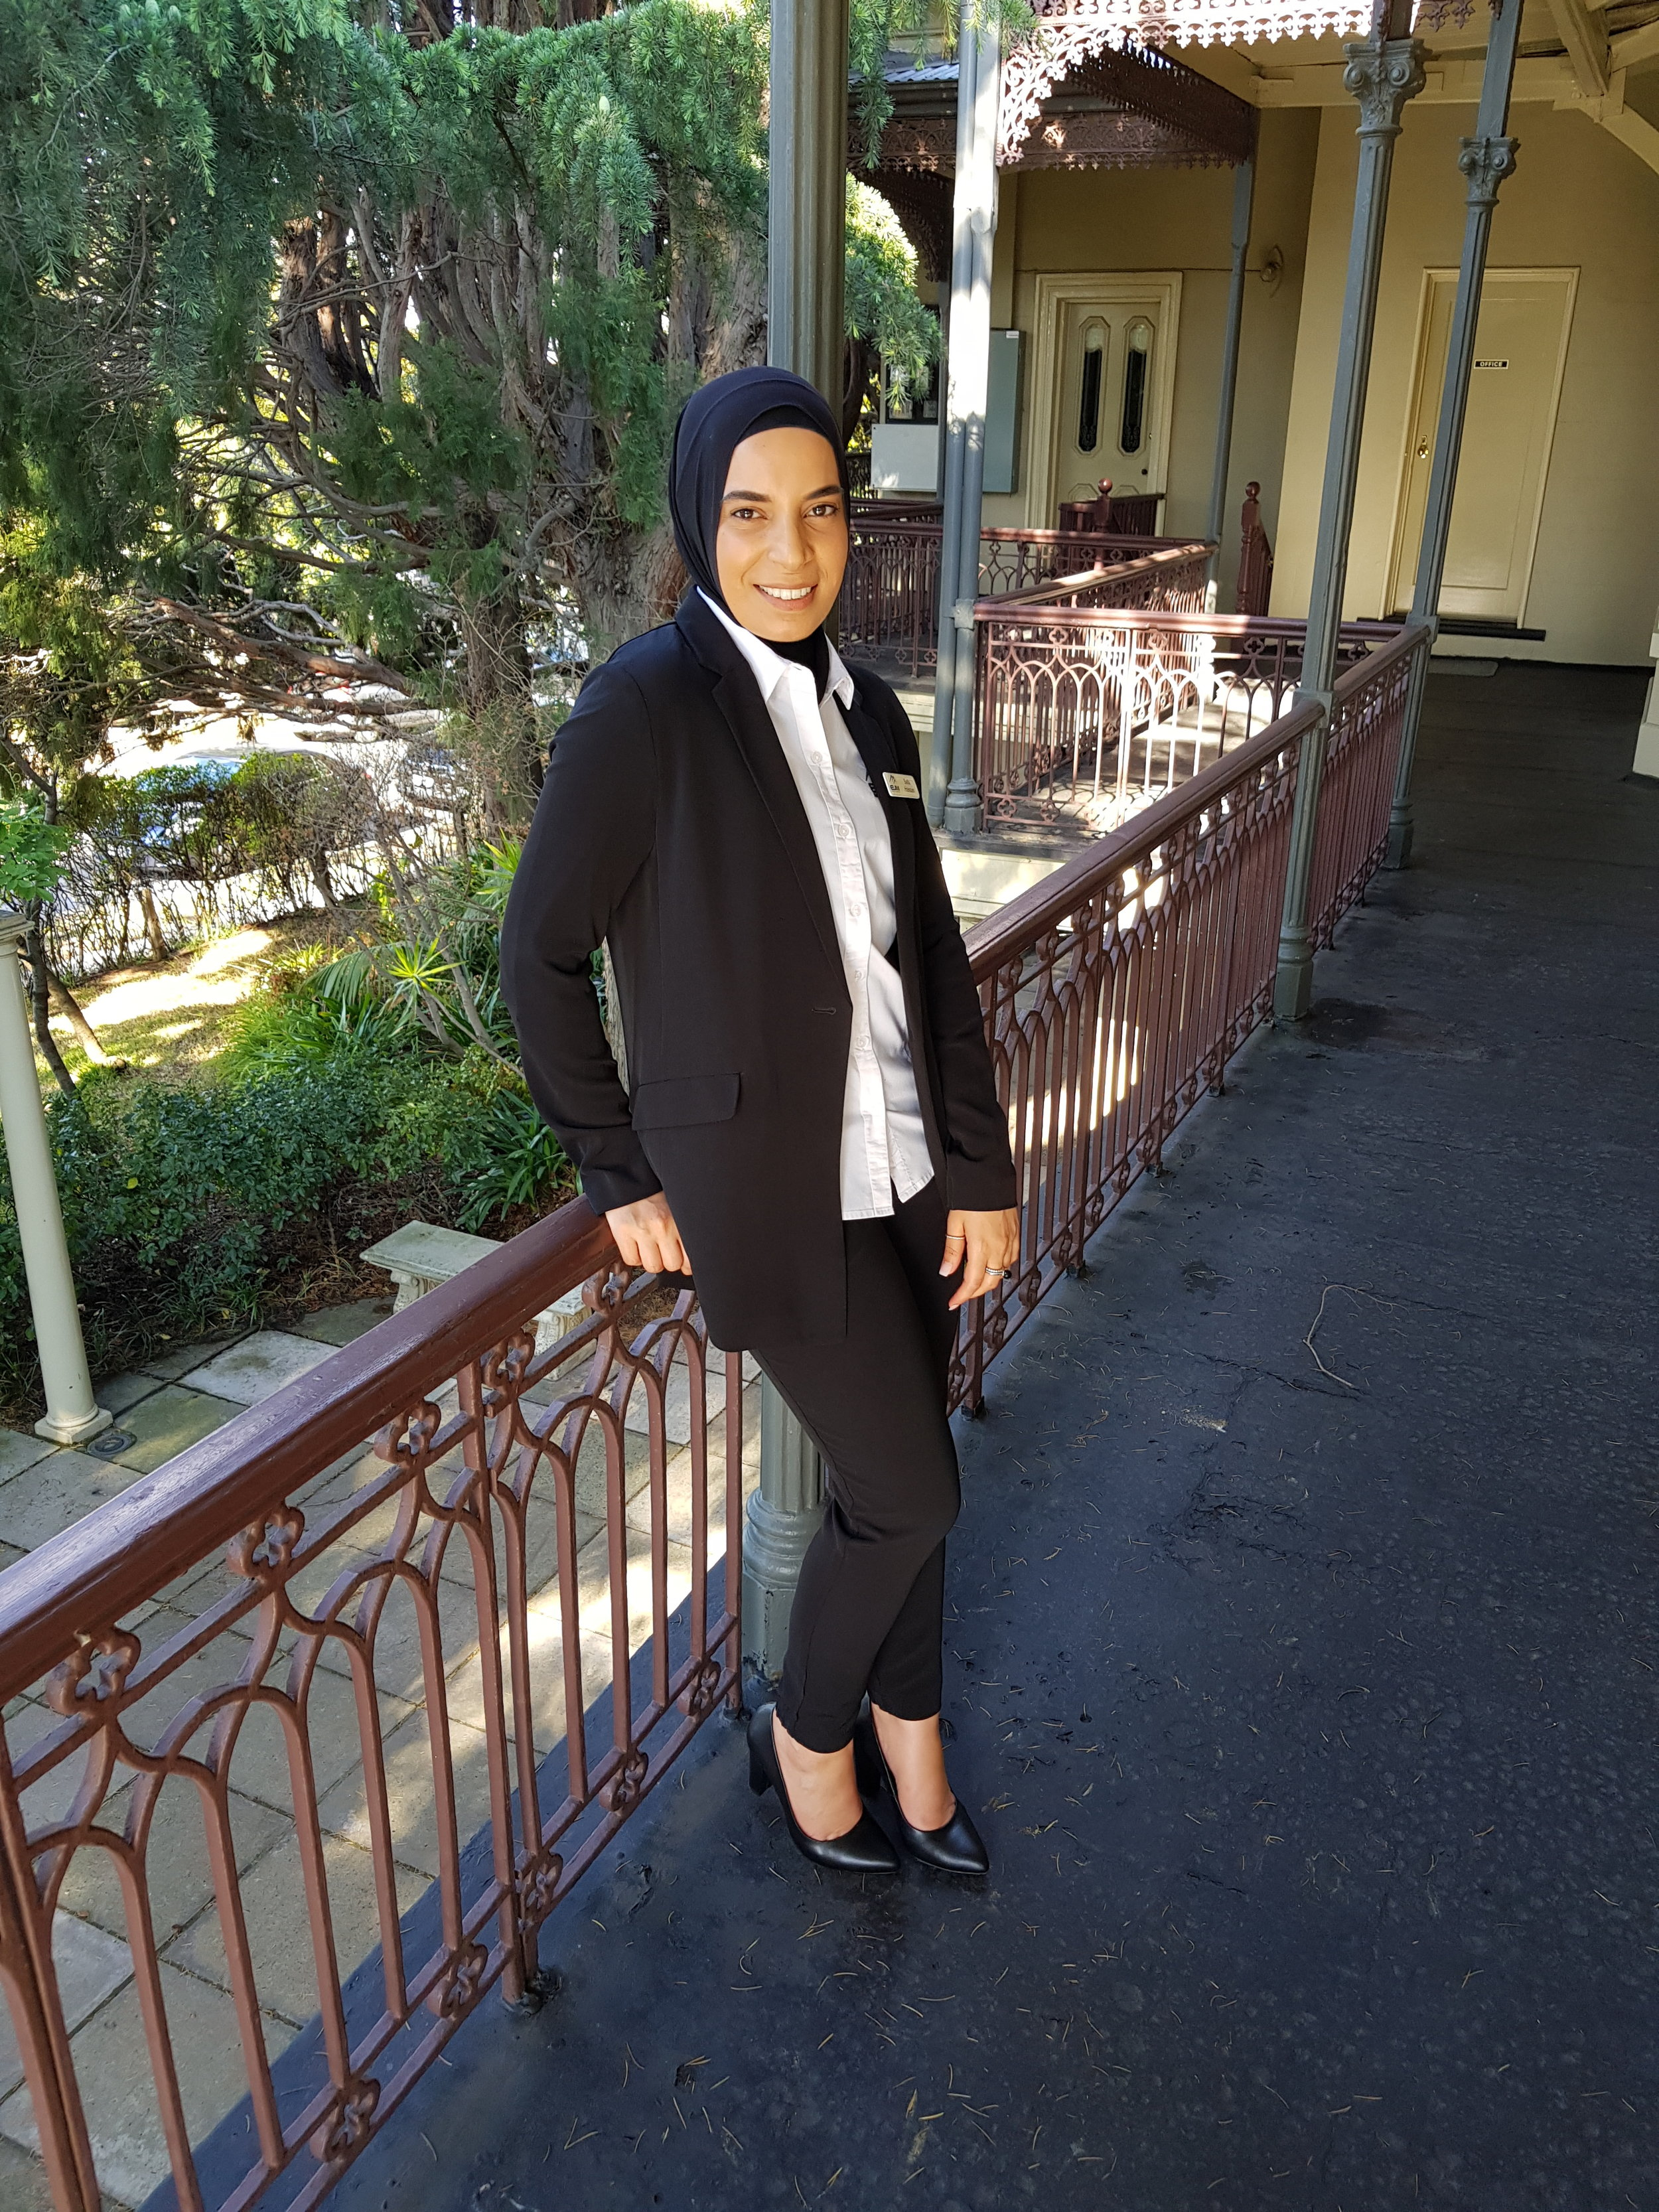 Safa Hassan - cLIENT SERVICE MANAGER